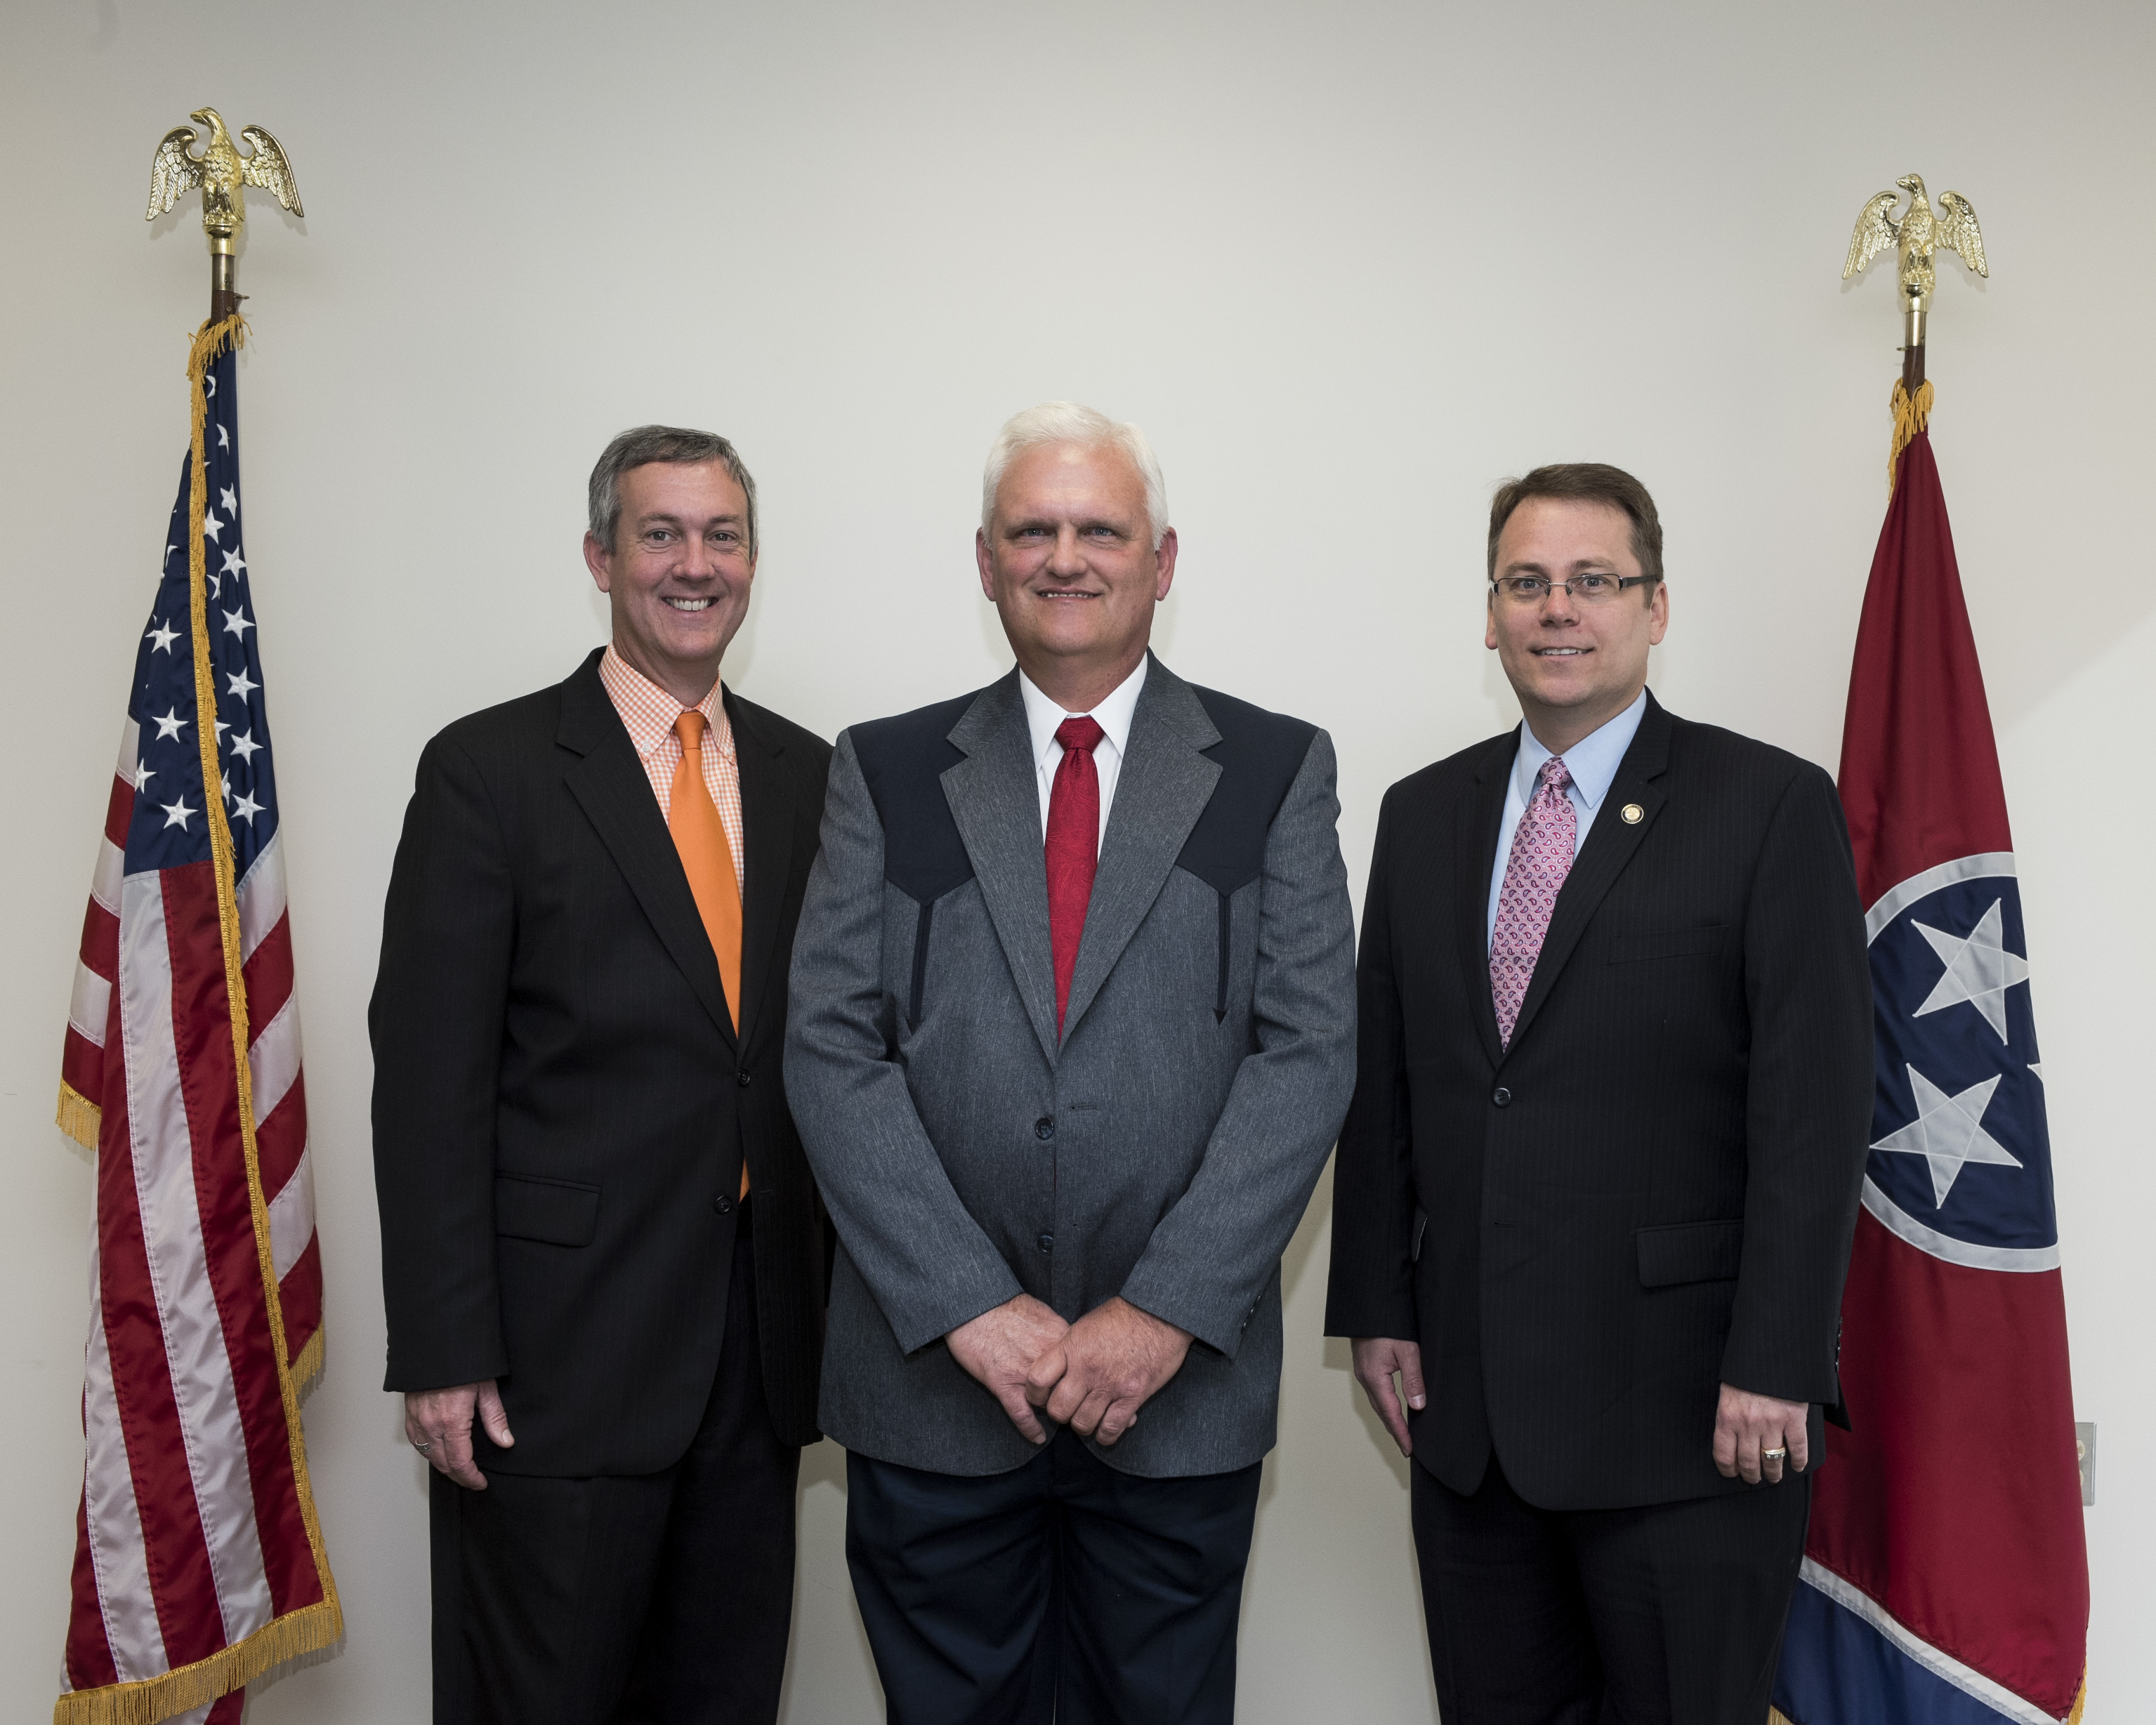 L to R: Secretary Hargett, Moore County Administrator of Elections Jim Sanders and Coordinator of Elections Mark Goins May 2, 2017.